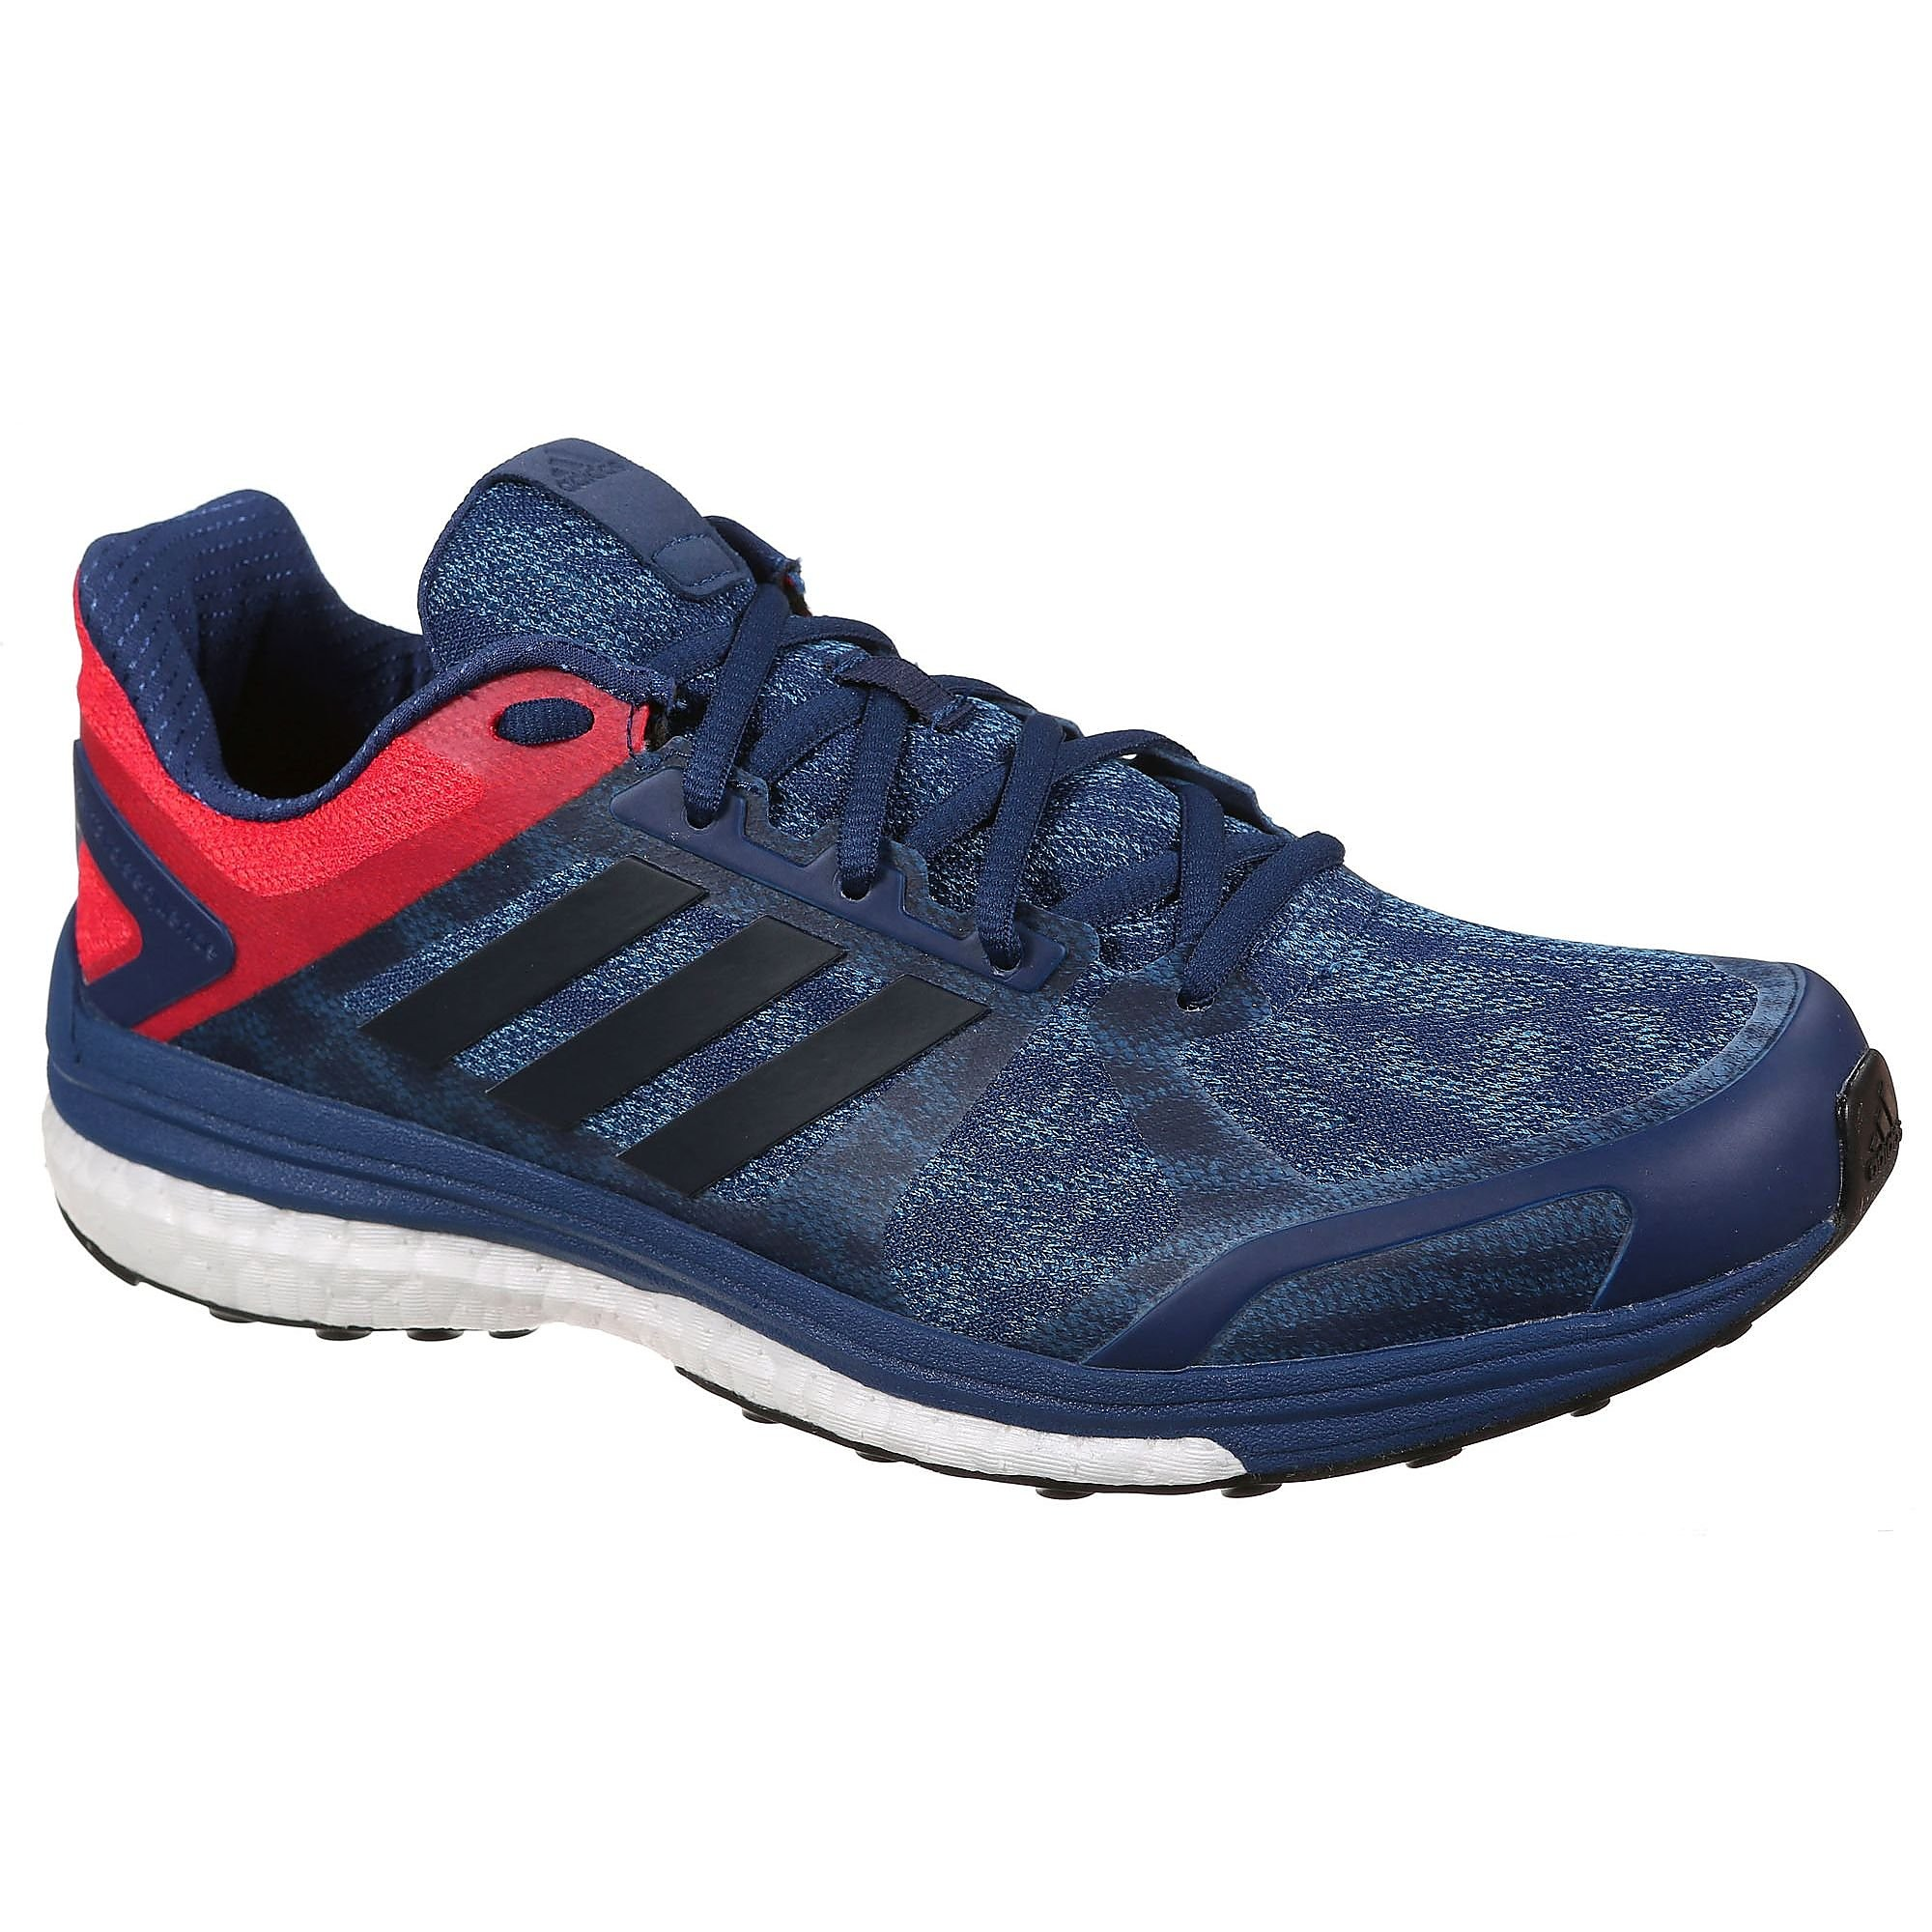 adidas Men's Supernova Sequence 9 Running Shoes Blue US 8-UK 7.5